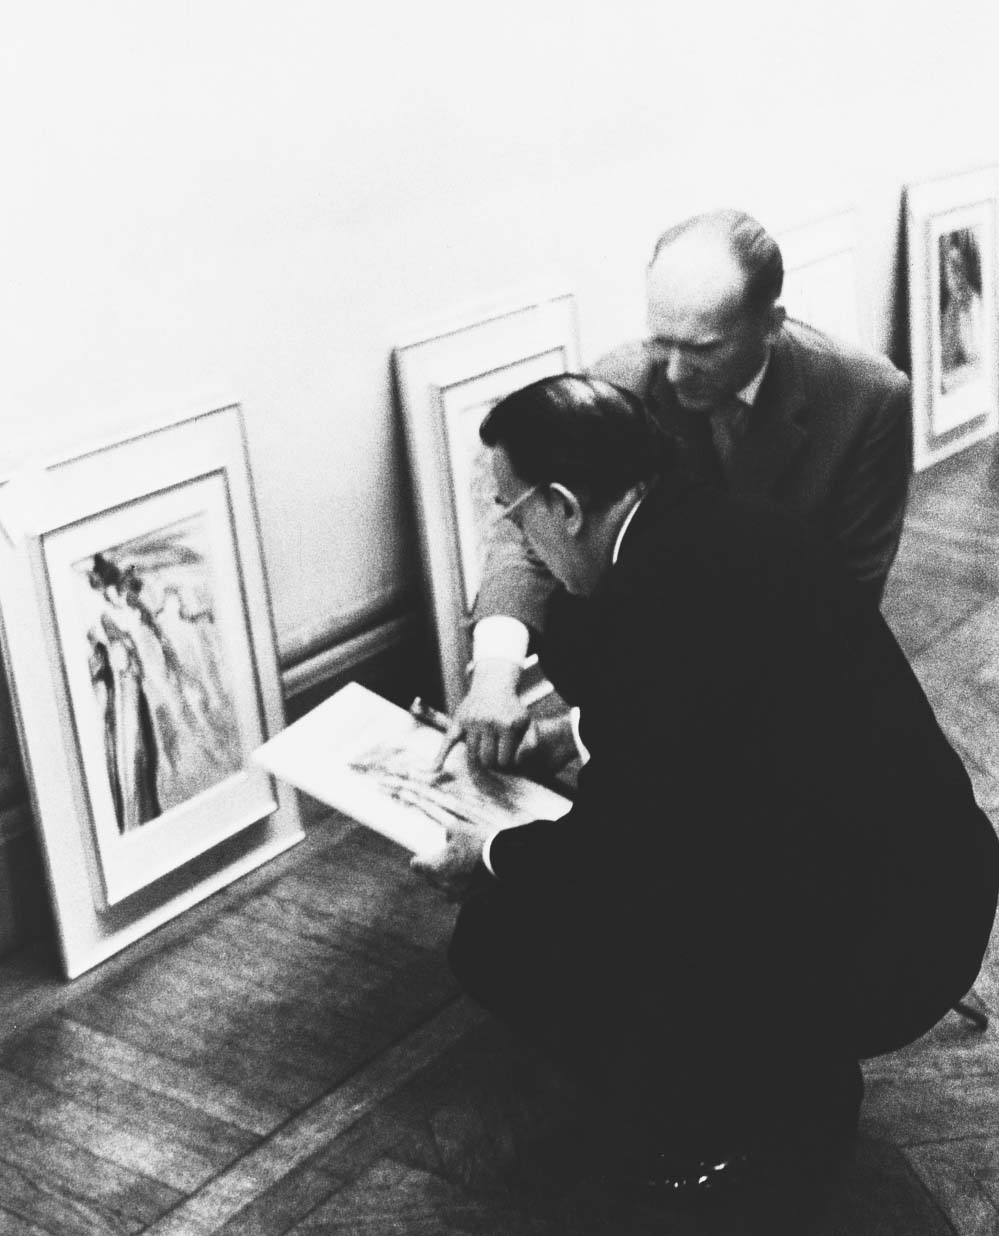 """Salvador Dalí and Jean Estrade examine wood engraving proofs for """"The Divine Comedy"""" during preparations for the exhibition of Dalí's """"Divine Comedy"""" watercolors at the Museum Galliera, Paris (May 19, 1960). (Photo credit: Eduard Fornés)"""